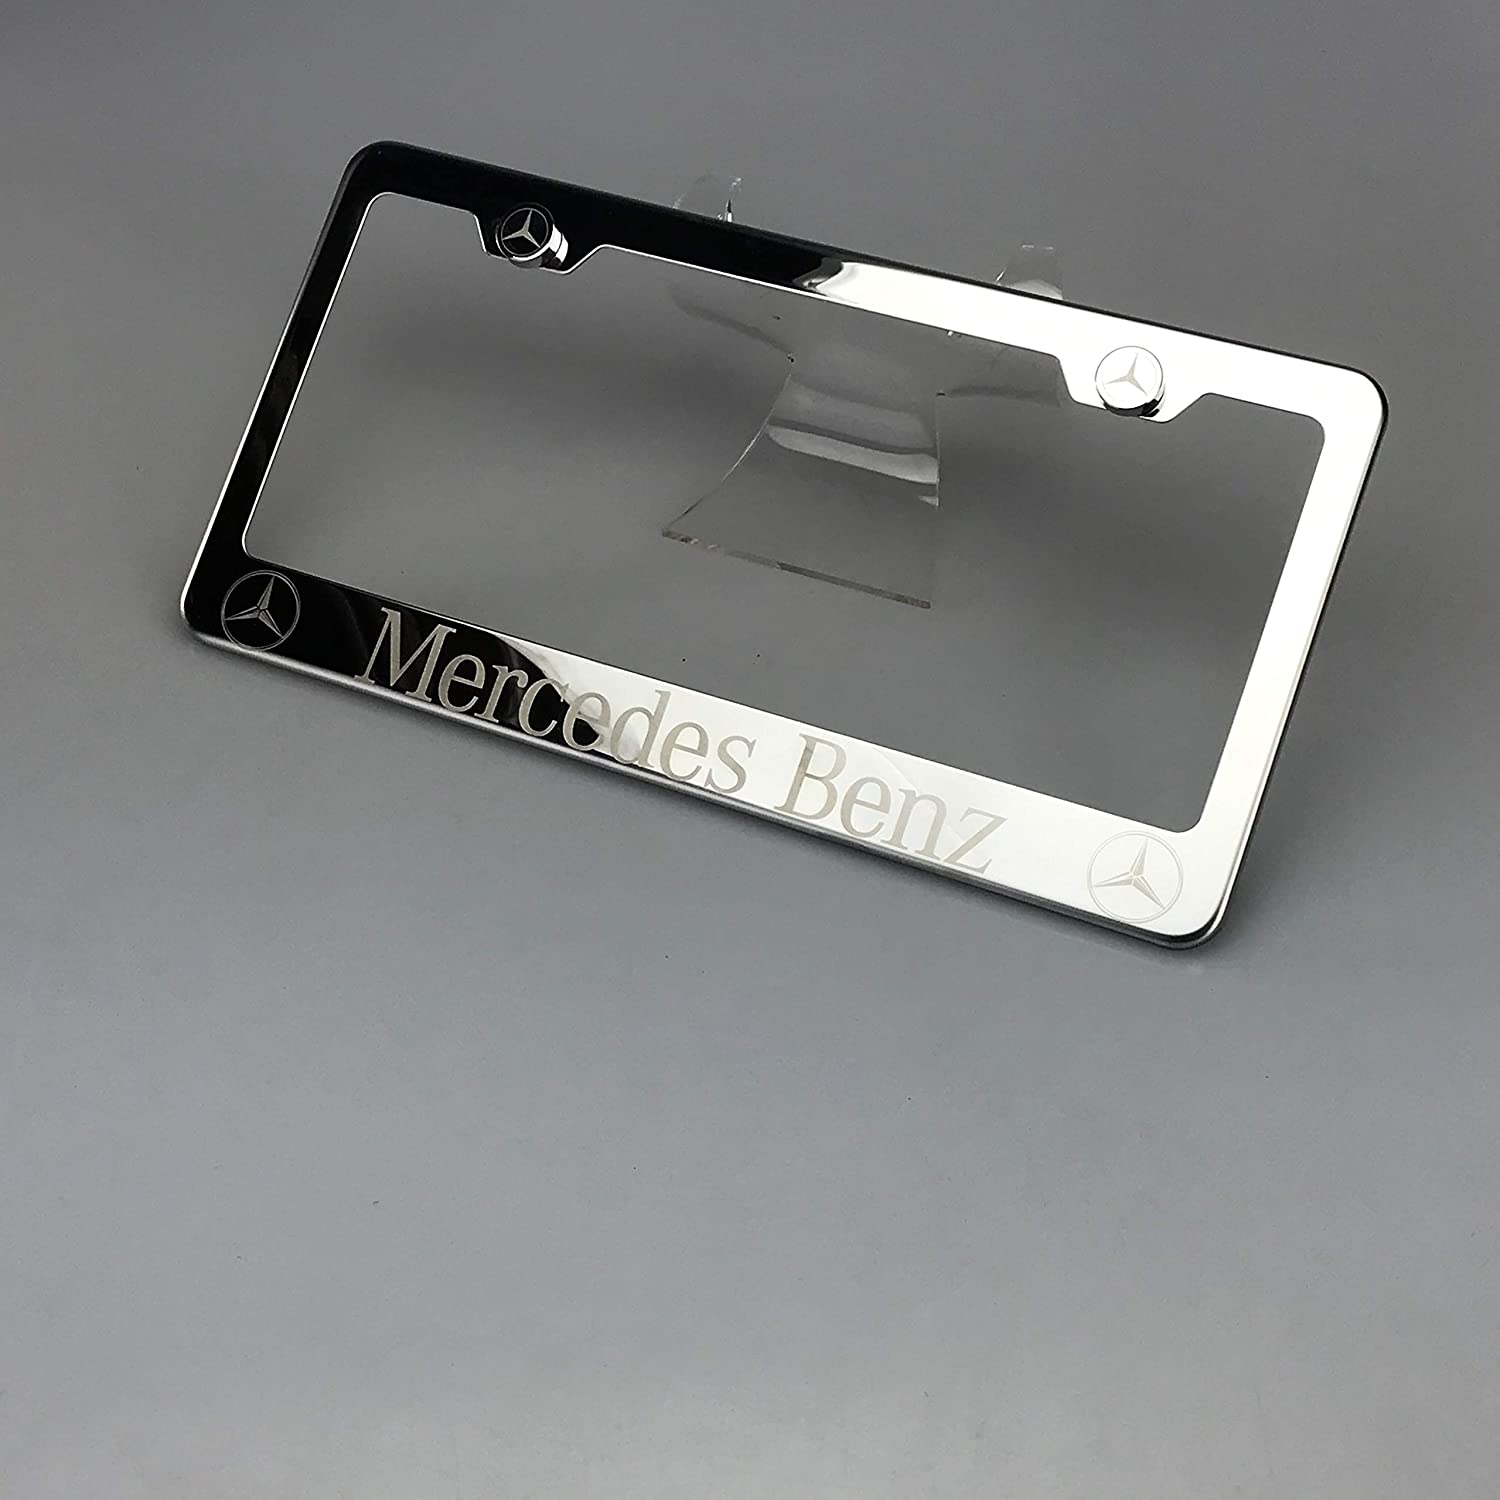 100/% Stainless Steel Fit Mercedes Benz Laser Engrave Chrome Mirror Polish License Plate Frame Holder with Logo Steel Screw Caps